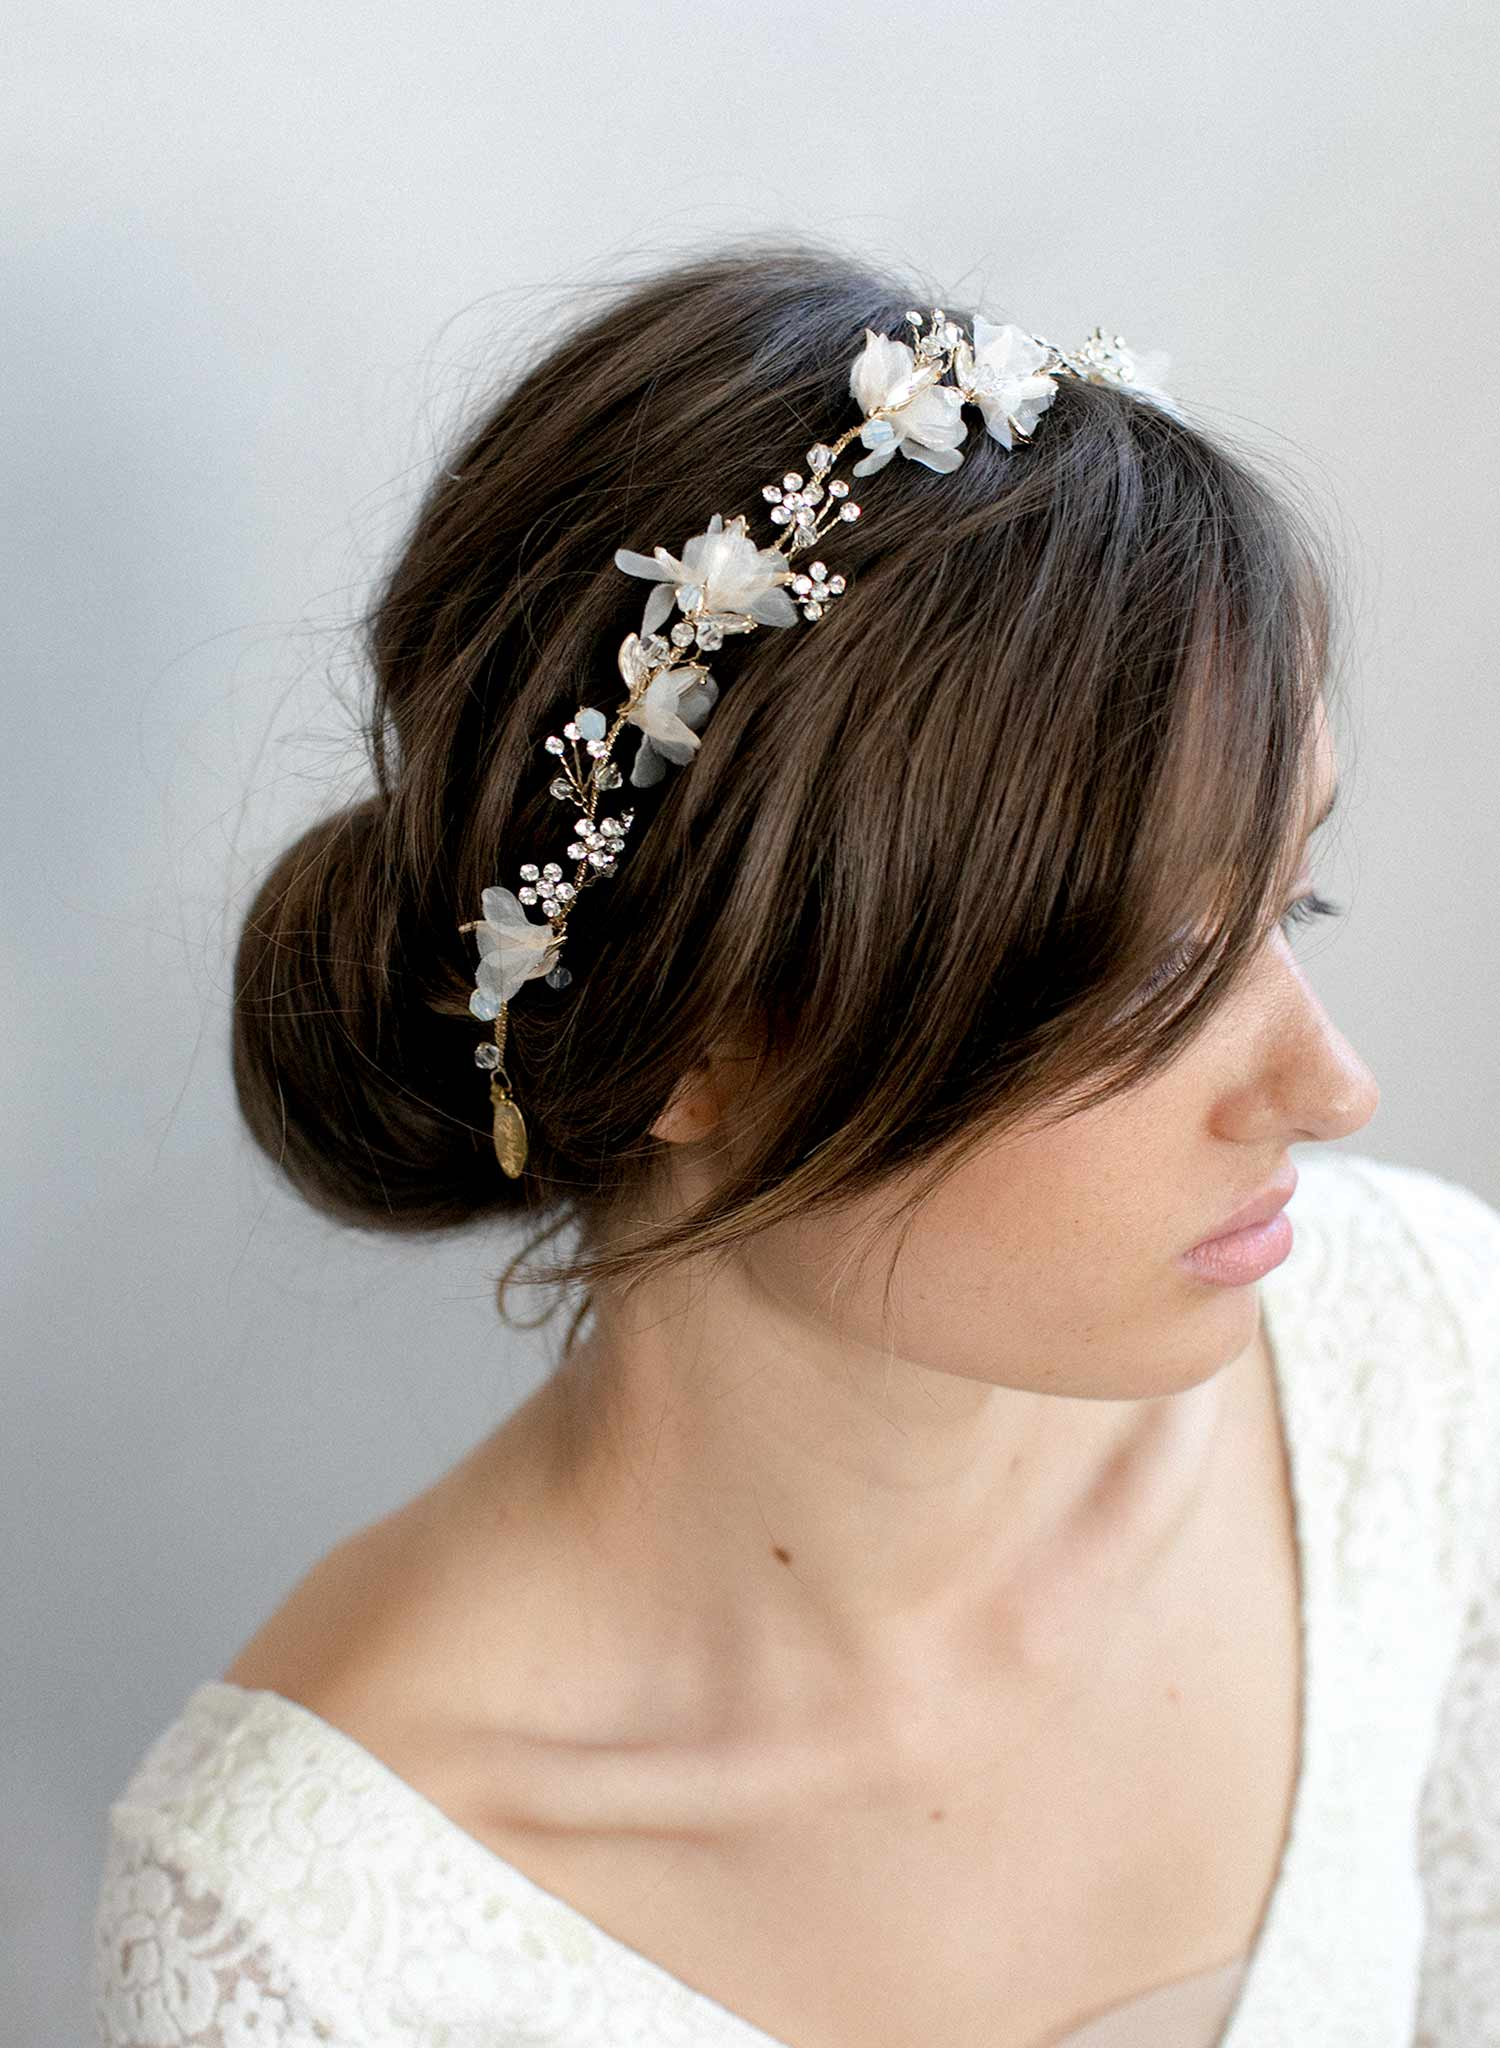 Bridal hair vine with silk blossoms